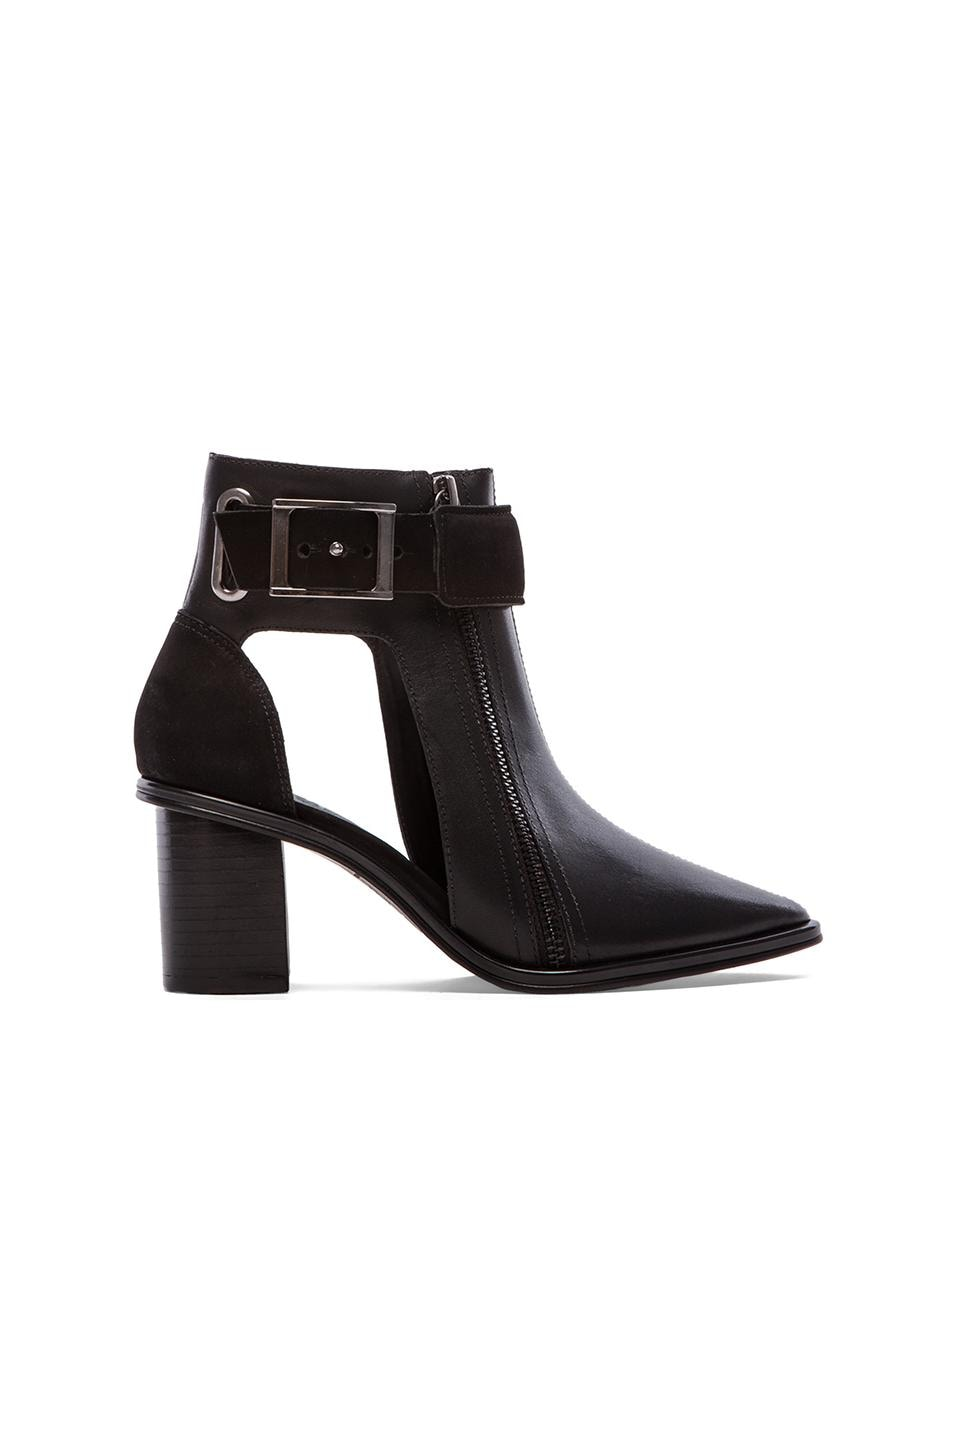 Tibi Suvi Booties in Black